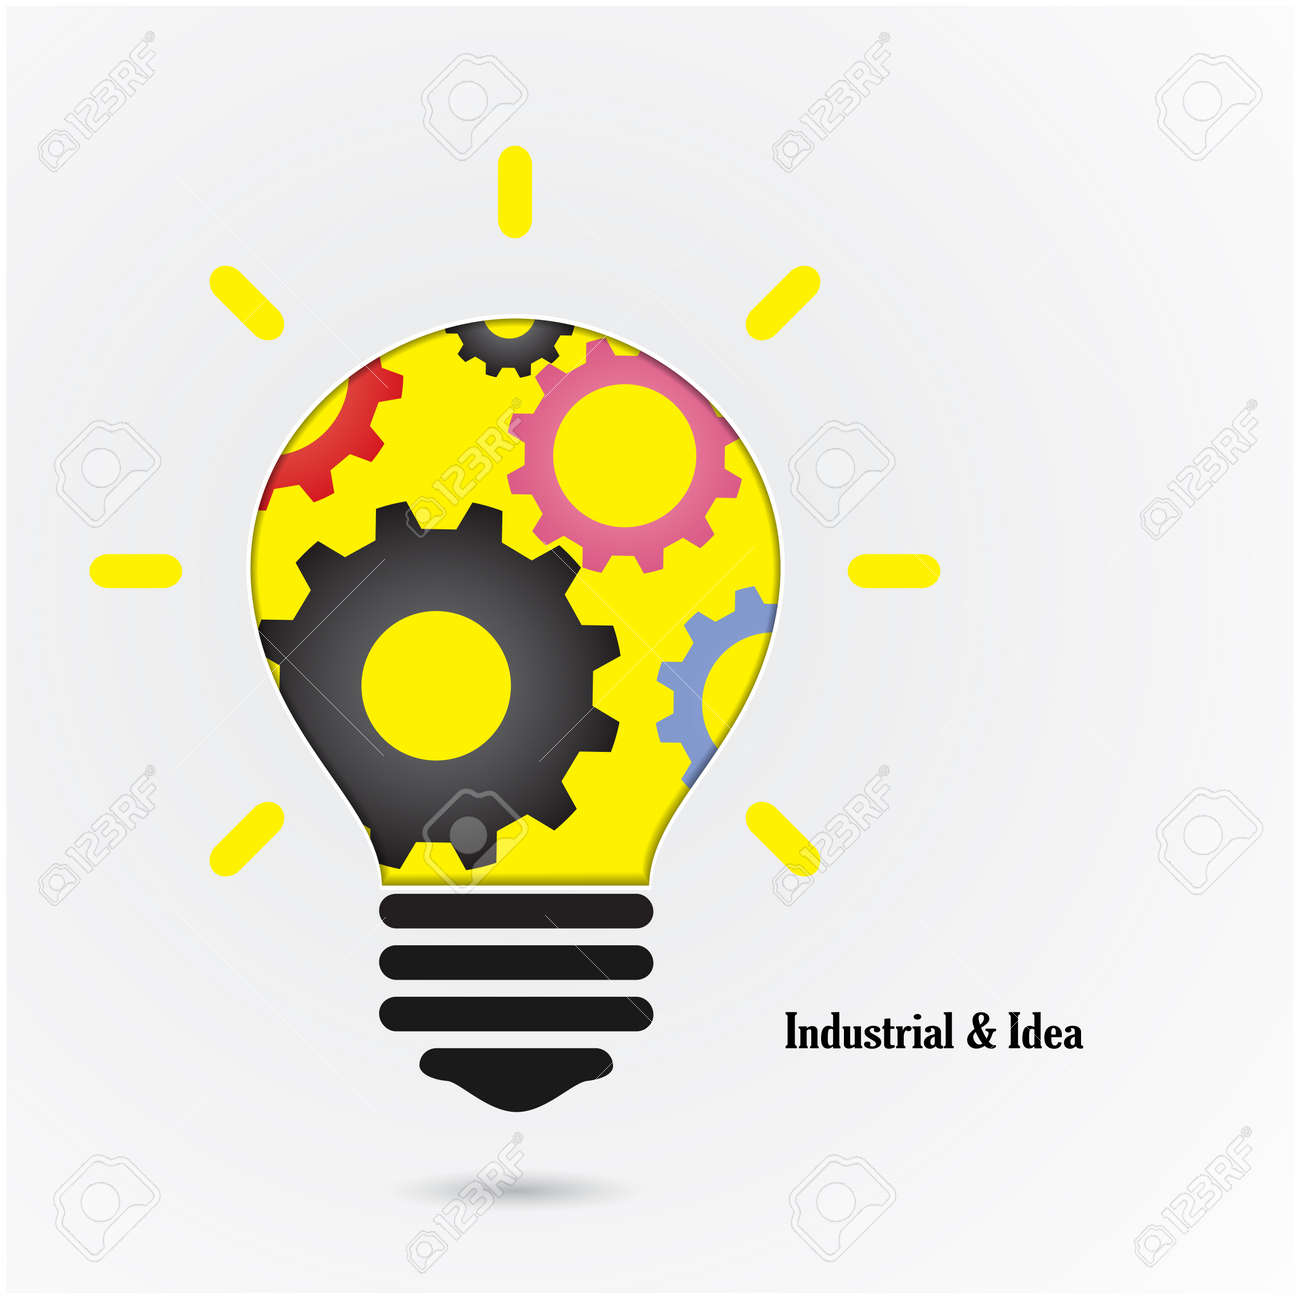 creative light bulb idea concept background design for poster flyer cover brochure education and